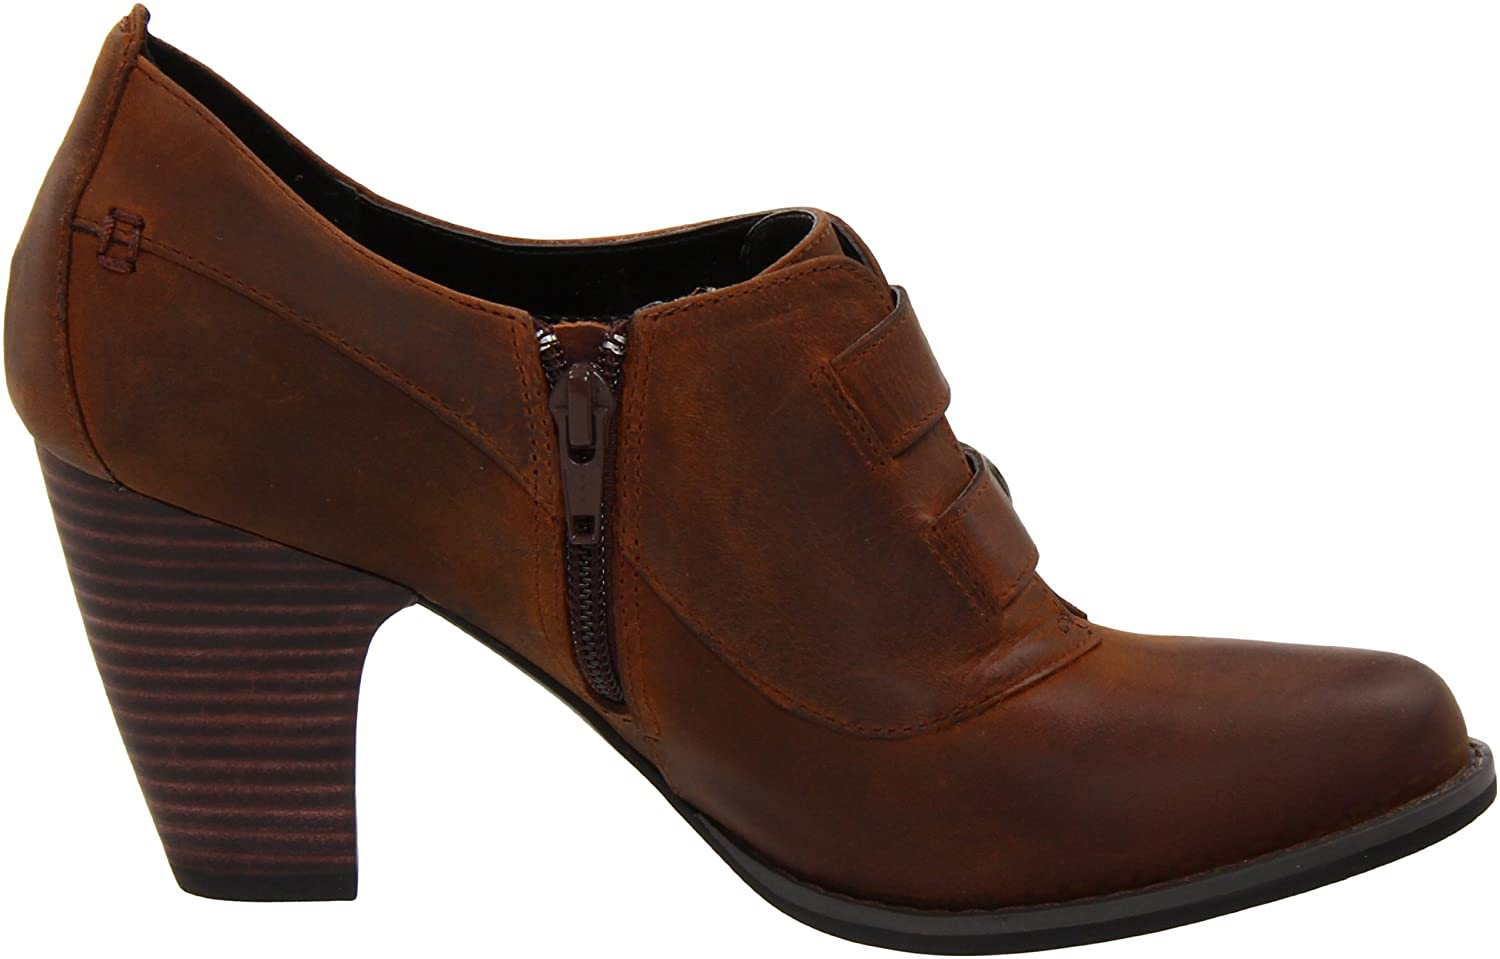 Amazon.com | Clarks Women's Buena Vista Ankle Boot, Brown Oily, 12 M US |  Ankle & Bootie